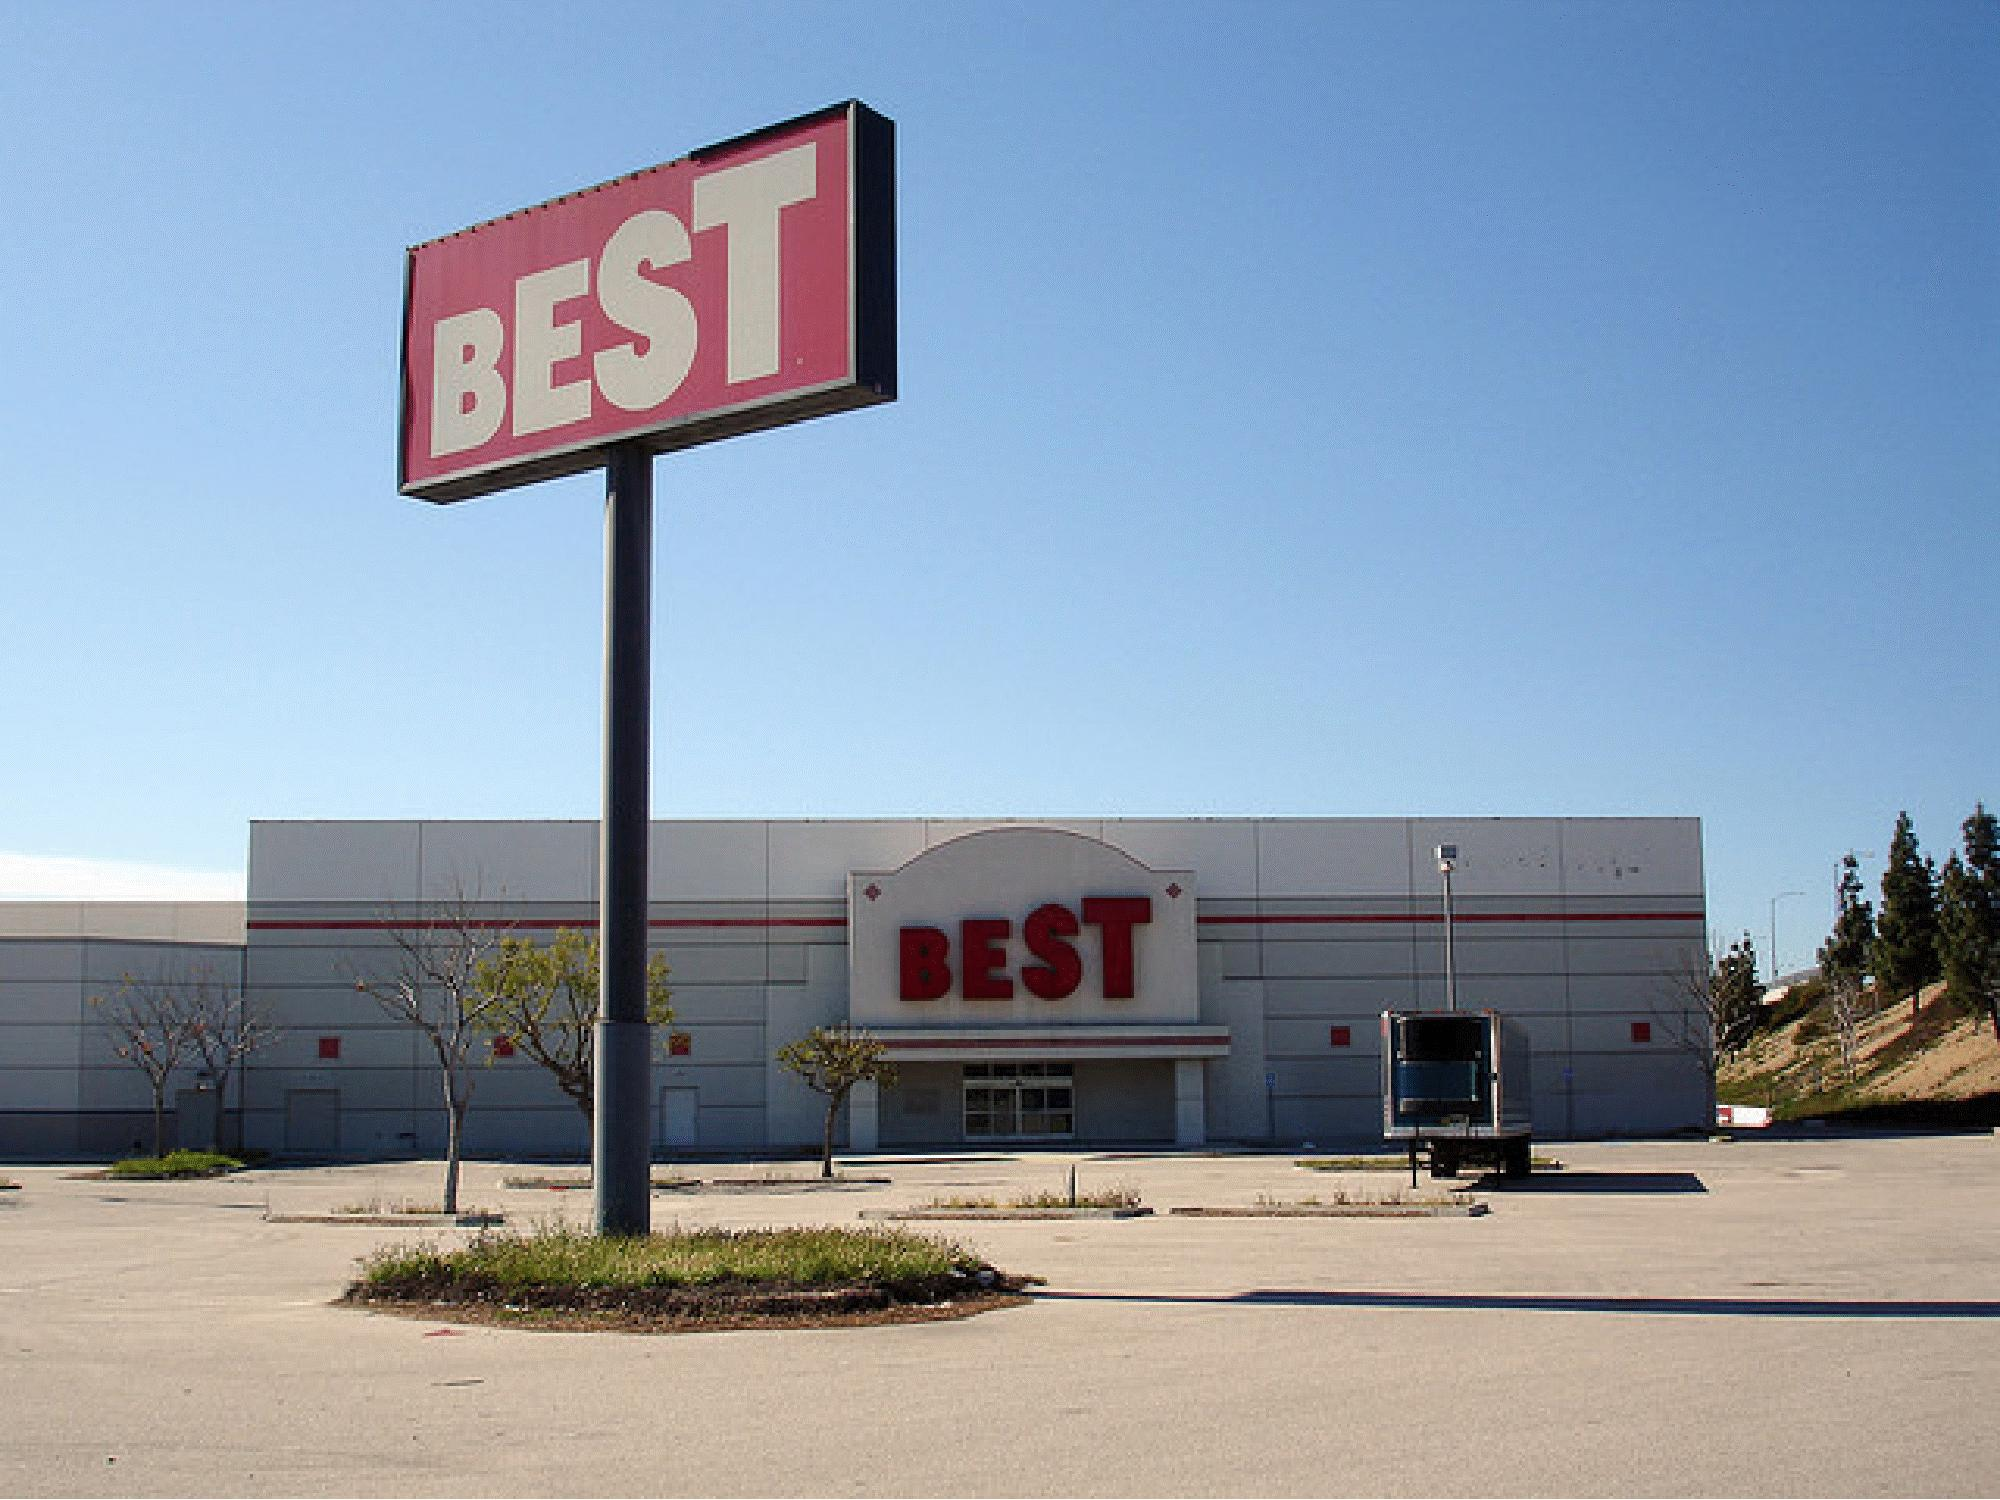 The stores, which are about 1, square feet in size compared with Best Buy's bigger boxes of 40, square feet, are scheduled to close by the end of May, he said.